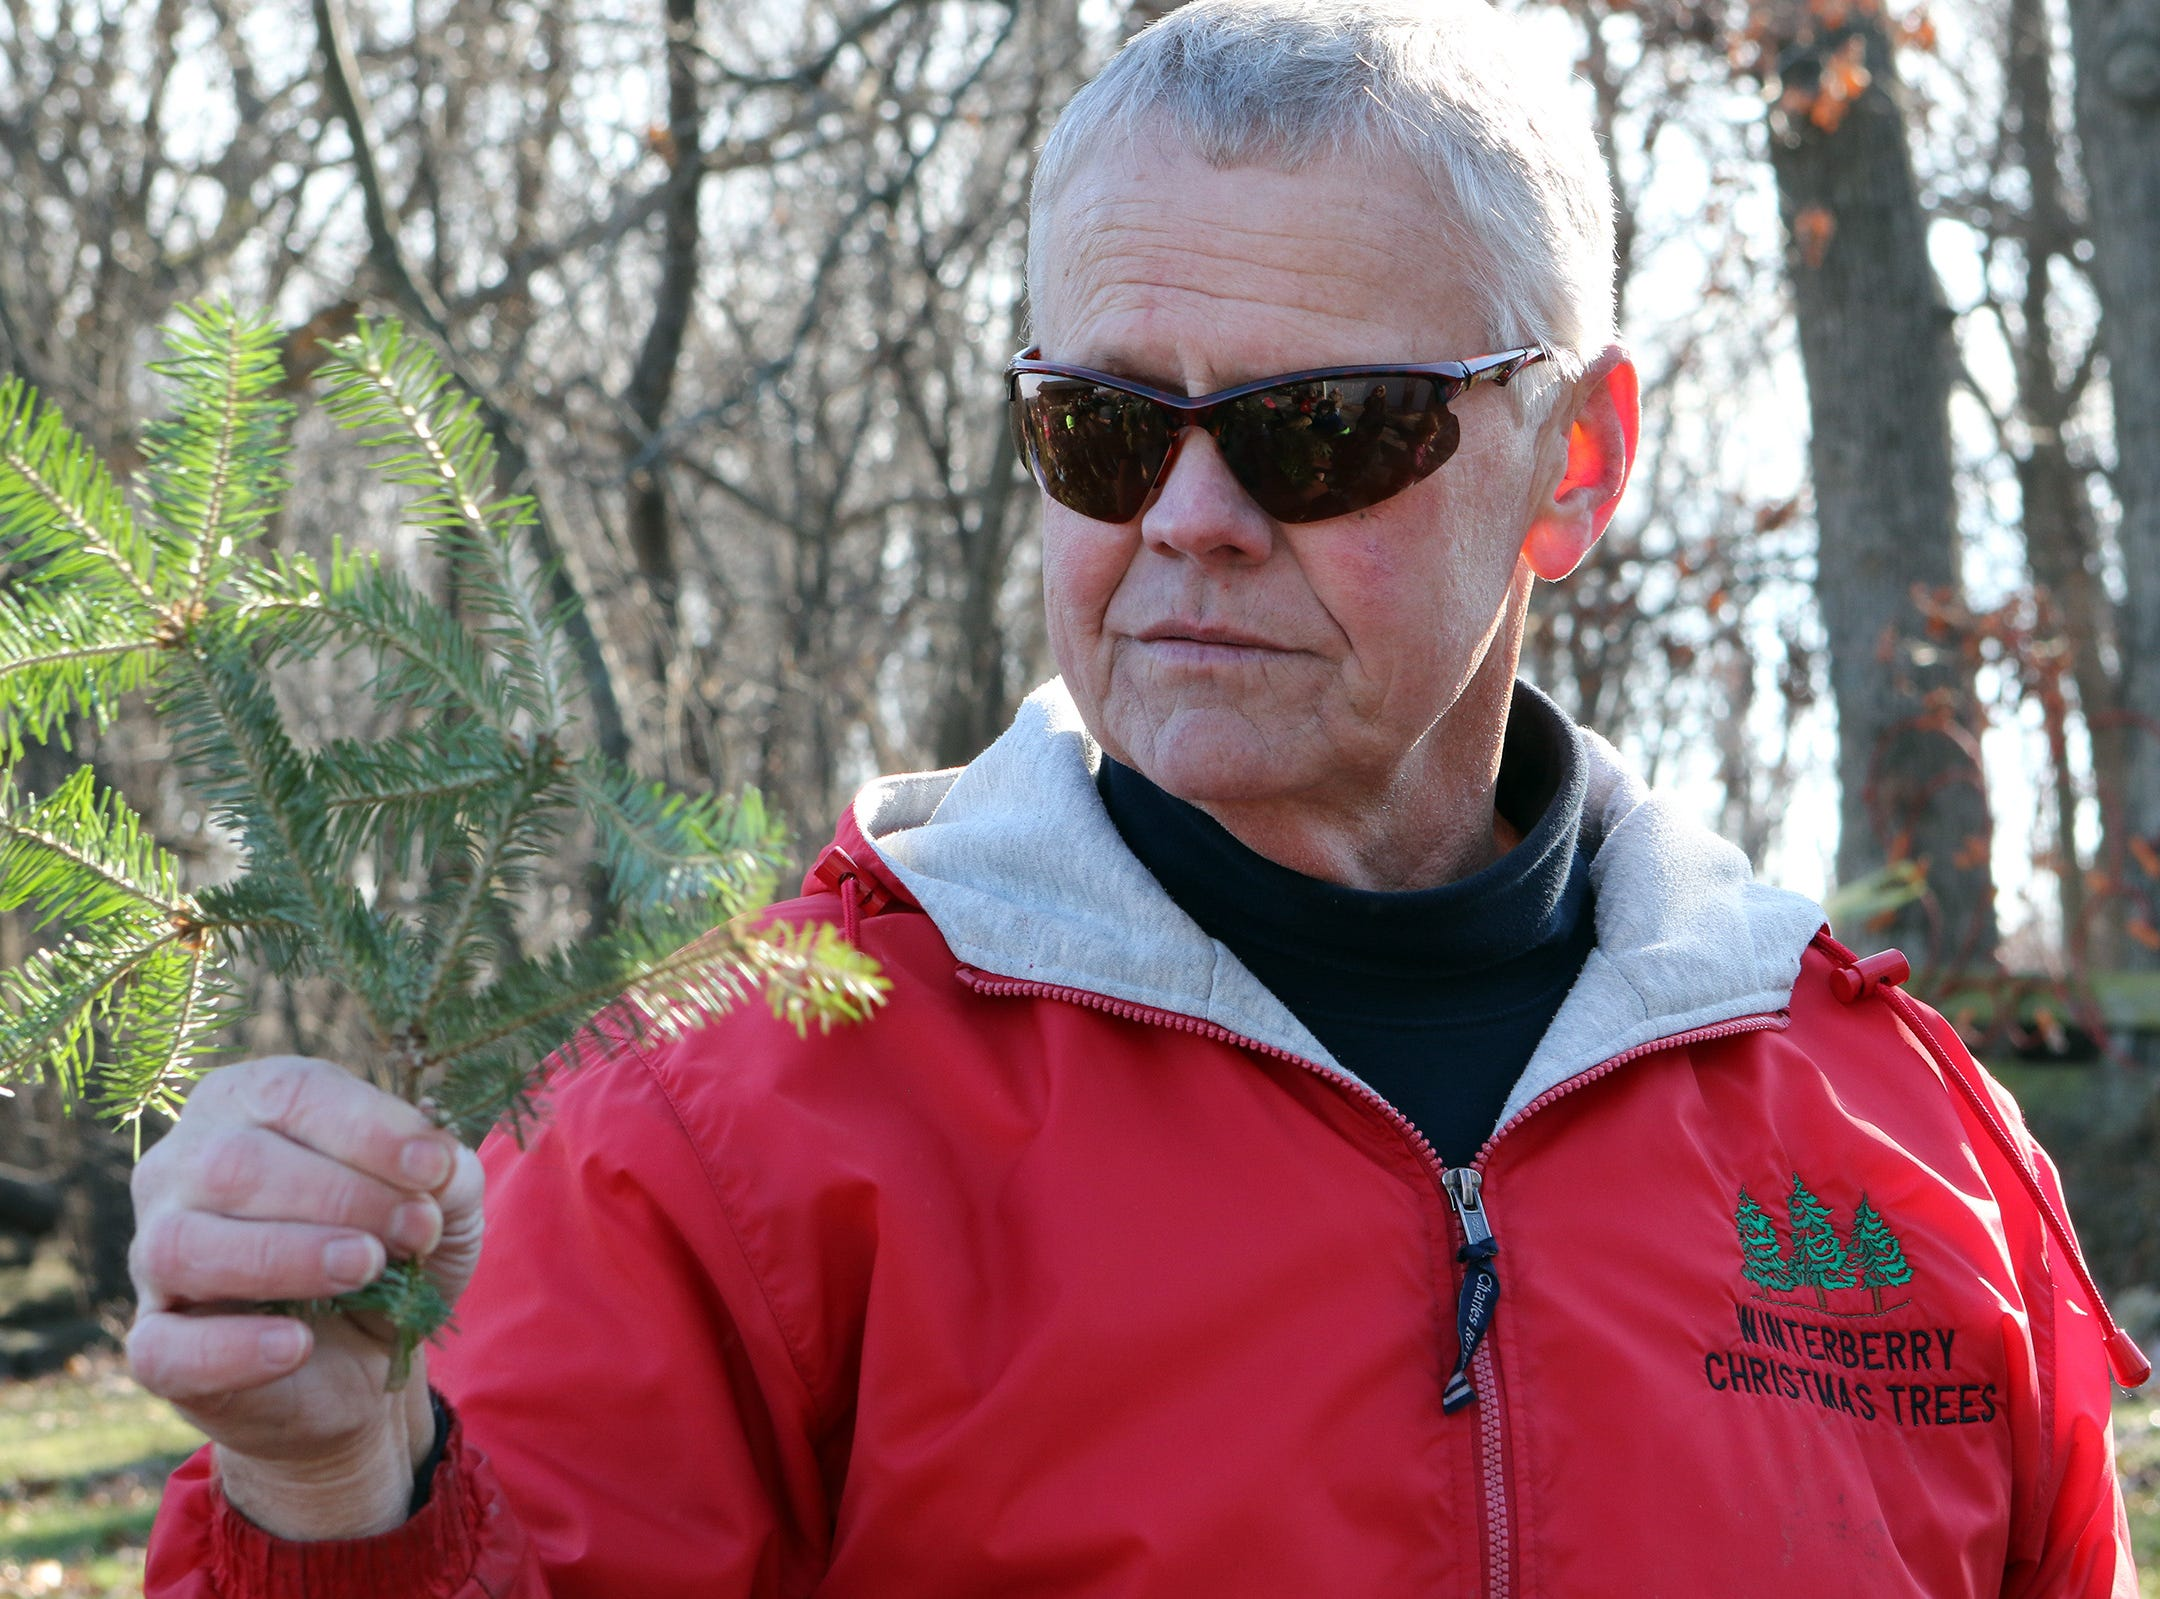 Greg Lancaster, owner of Lancaster's Winterberry Tree Farm in Brooklyn, shows student how needles grow on branches of fir trees during a visit to learn more about the Christmas tree industry on Nov. 15.